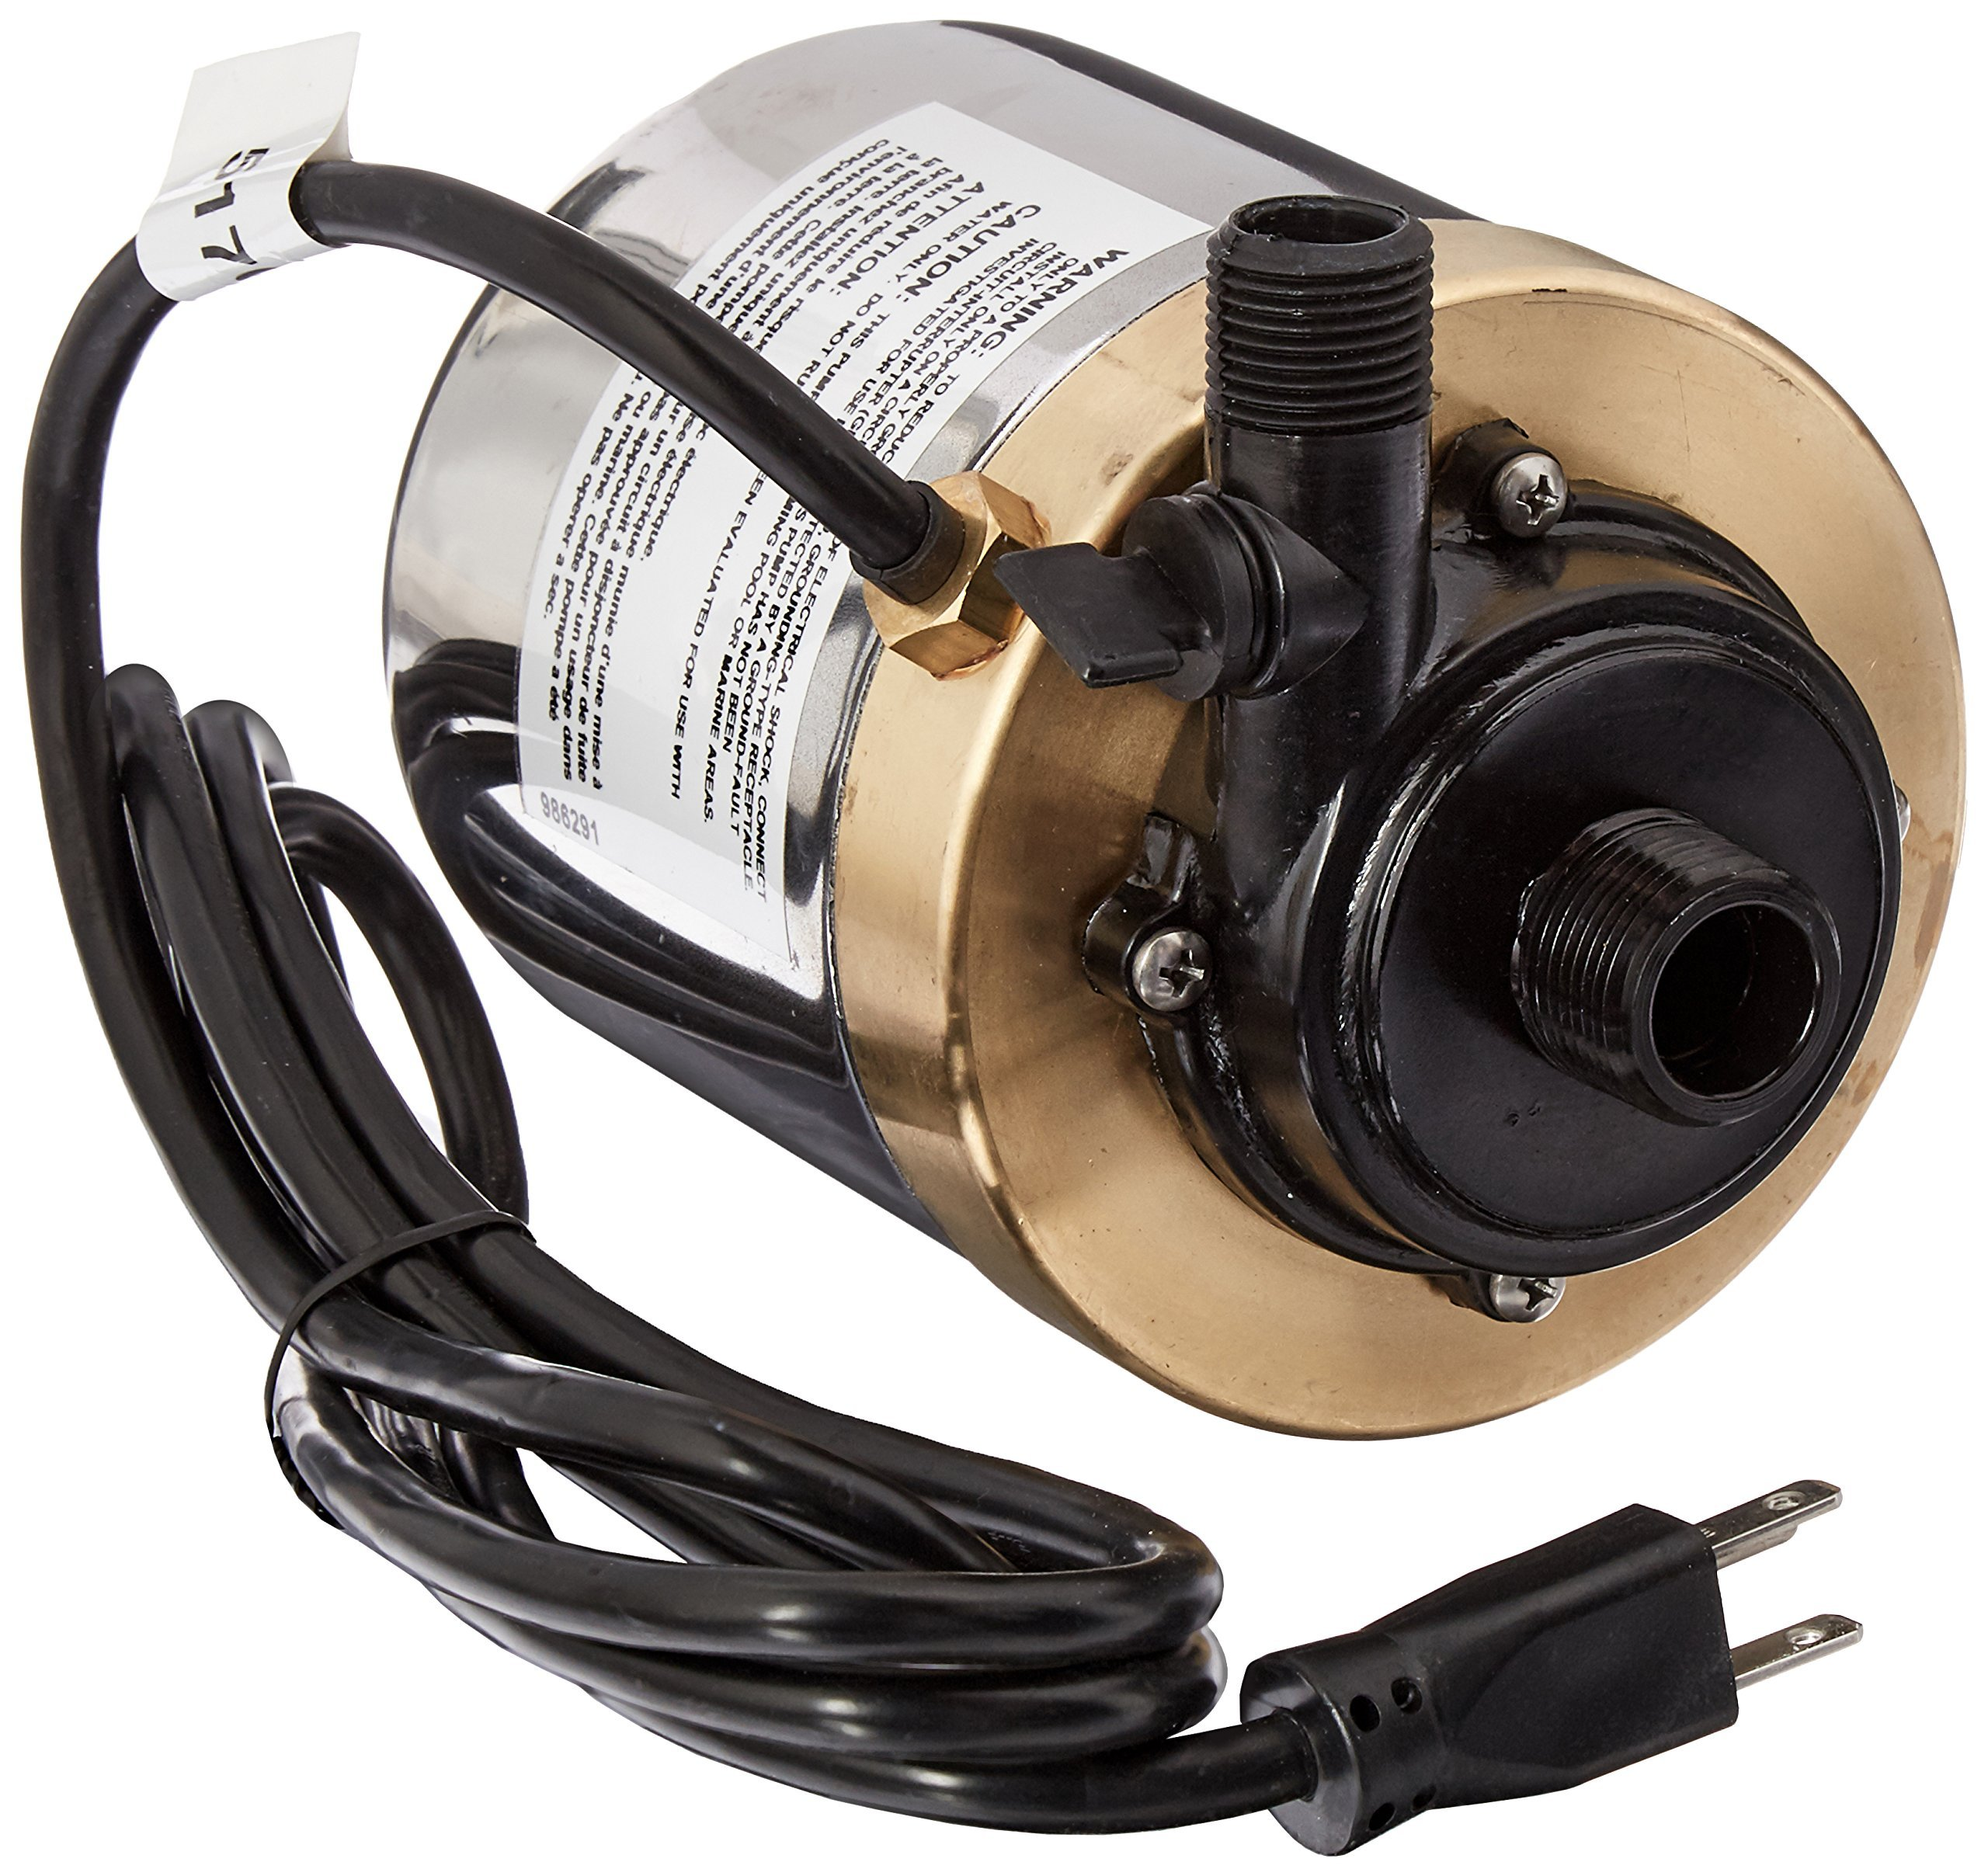 Little Giant 517011 Stainless Steel 1200GPH Pump with 6-Feet Cord, Bronze by Little Giant